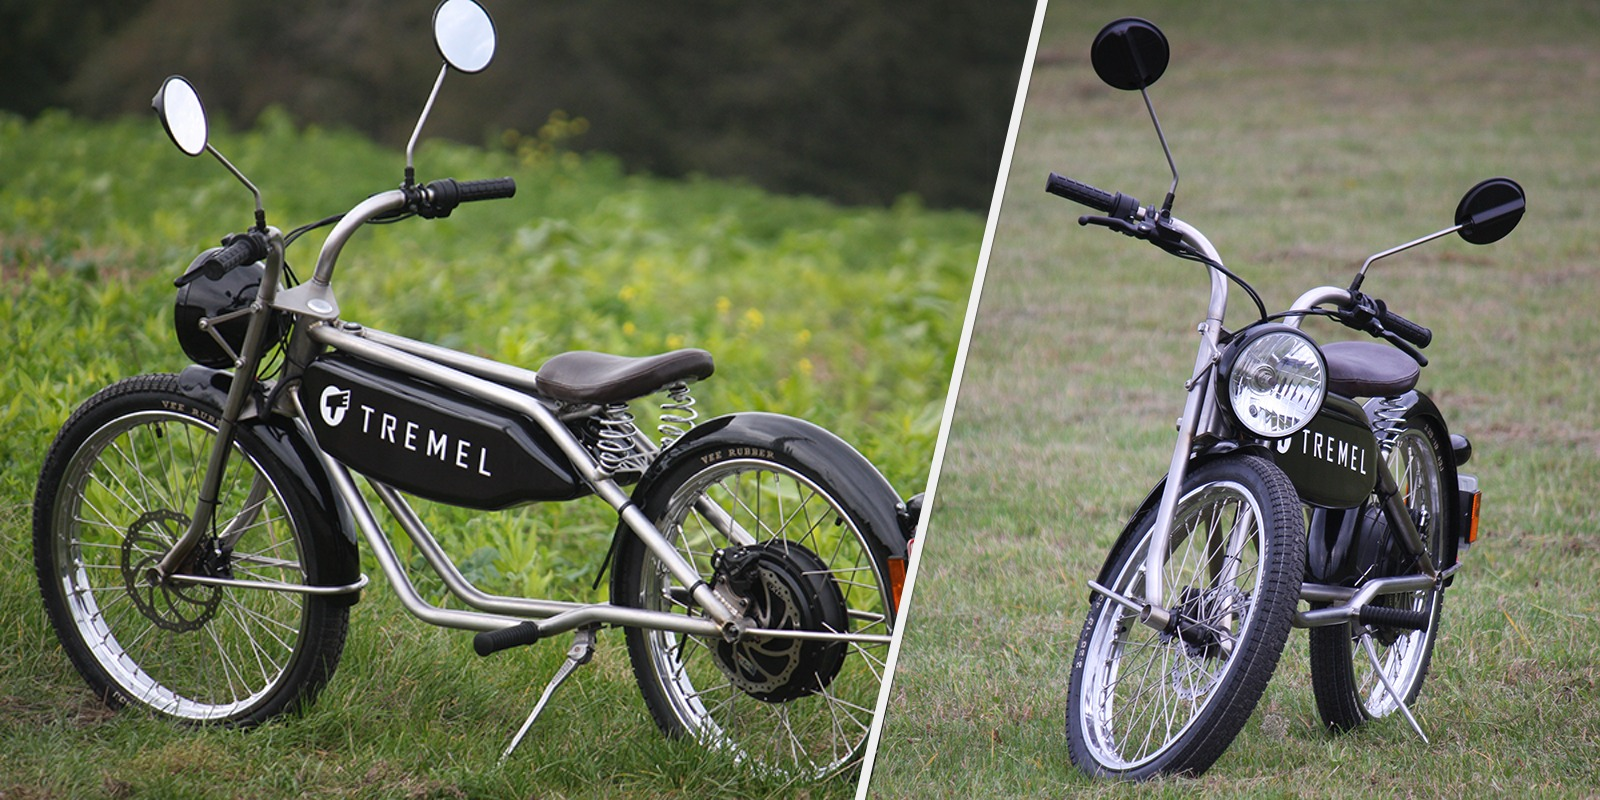 This 3 kW vintage-style electric moped has nailed the classic look